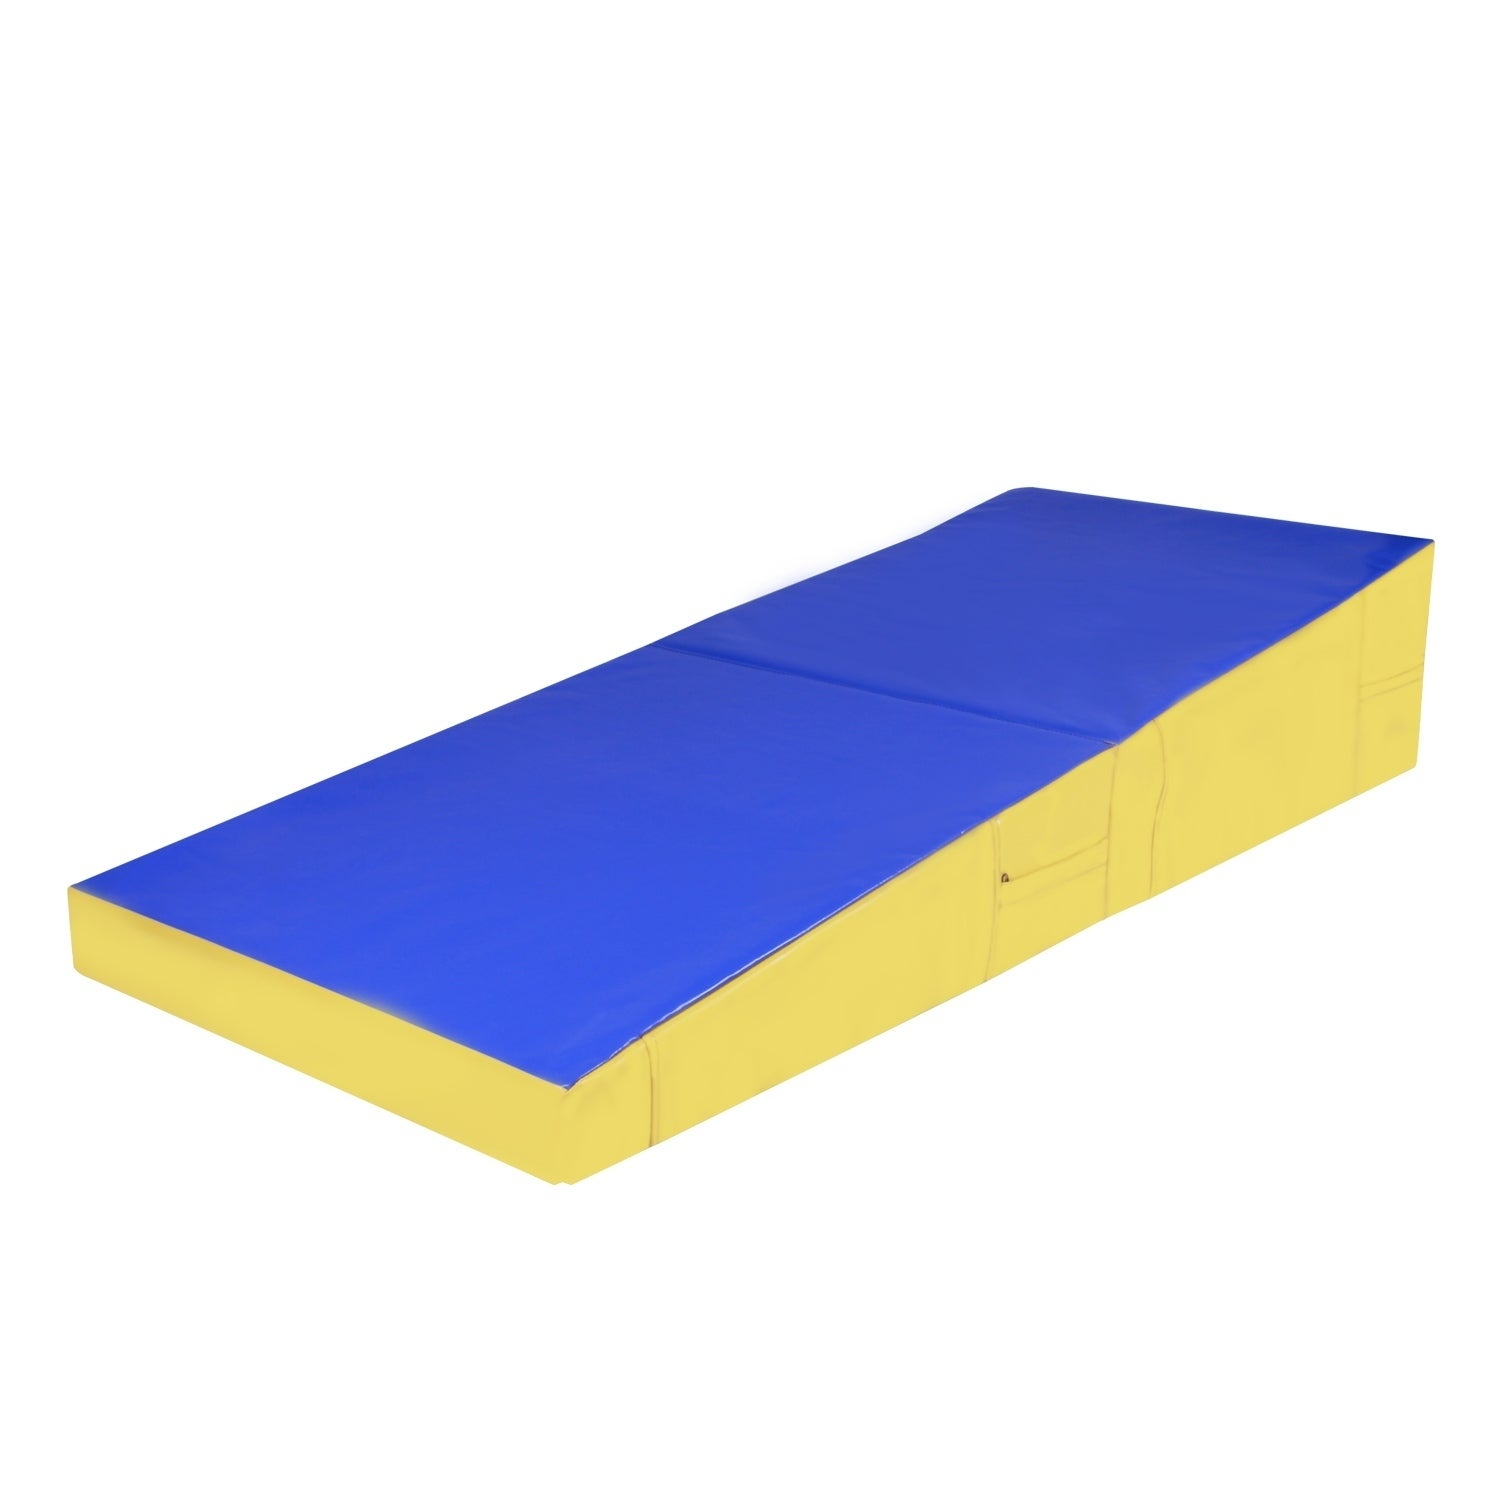 incline gymnastics cheer cheese wedge props mat gymnastic mats mto folding ideal as